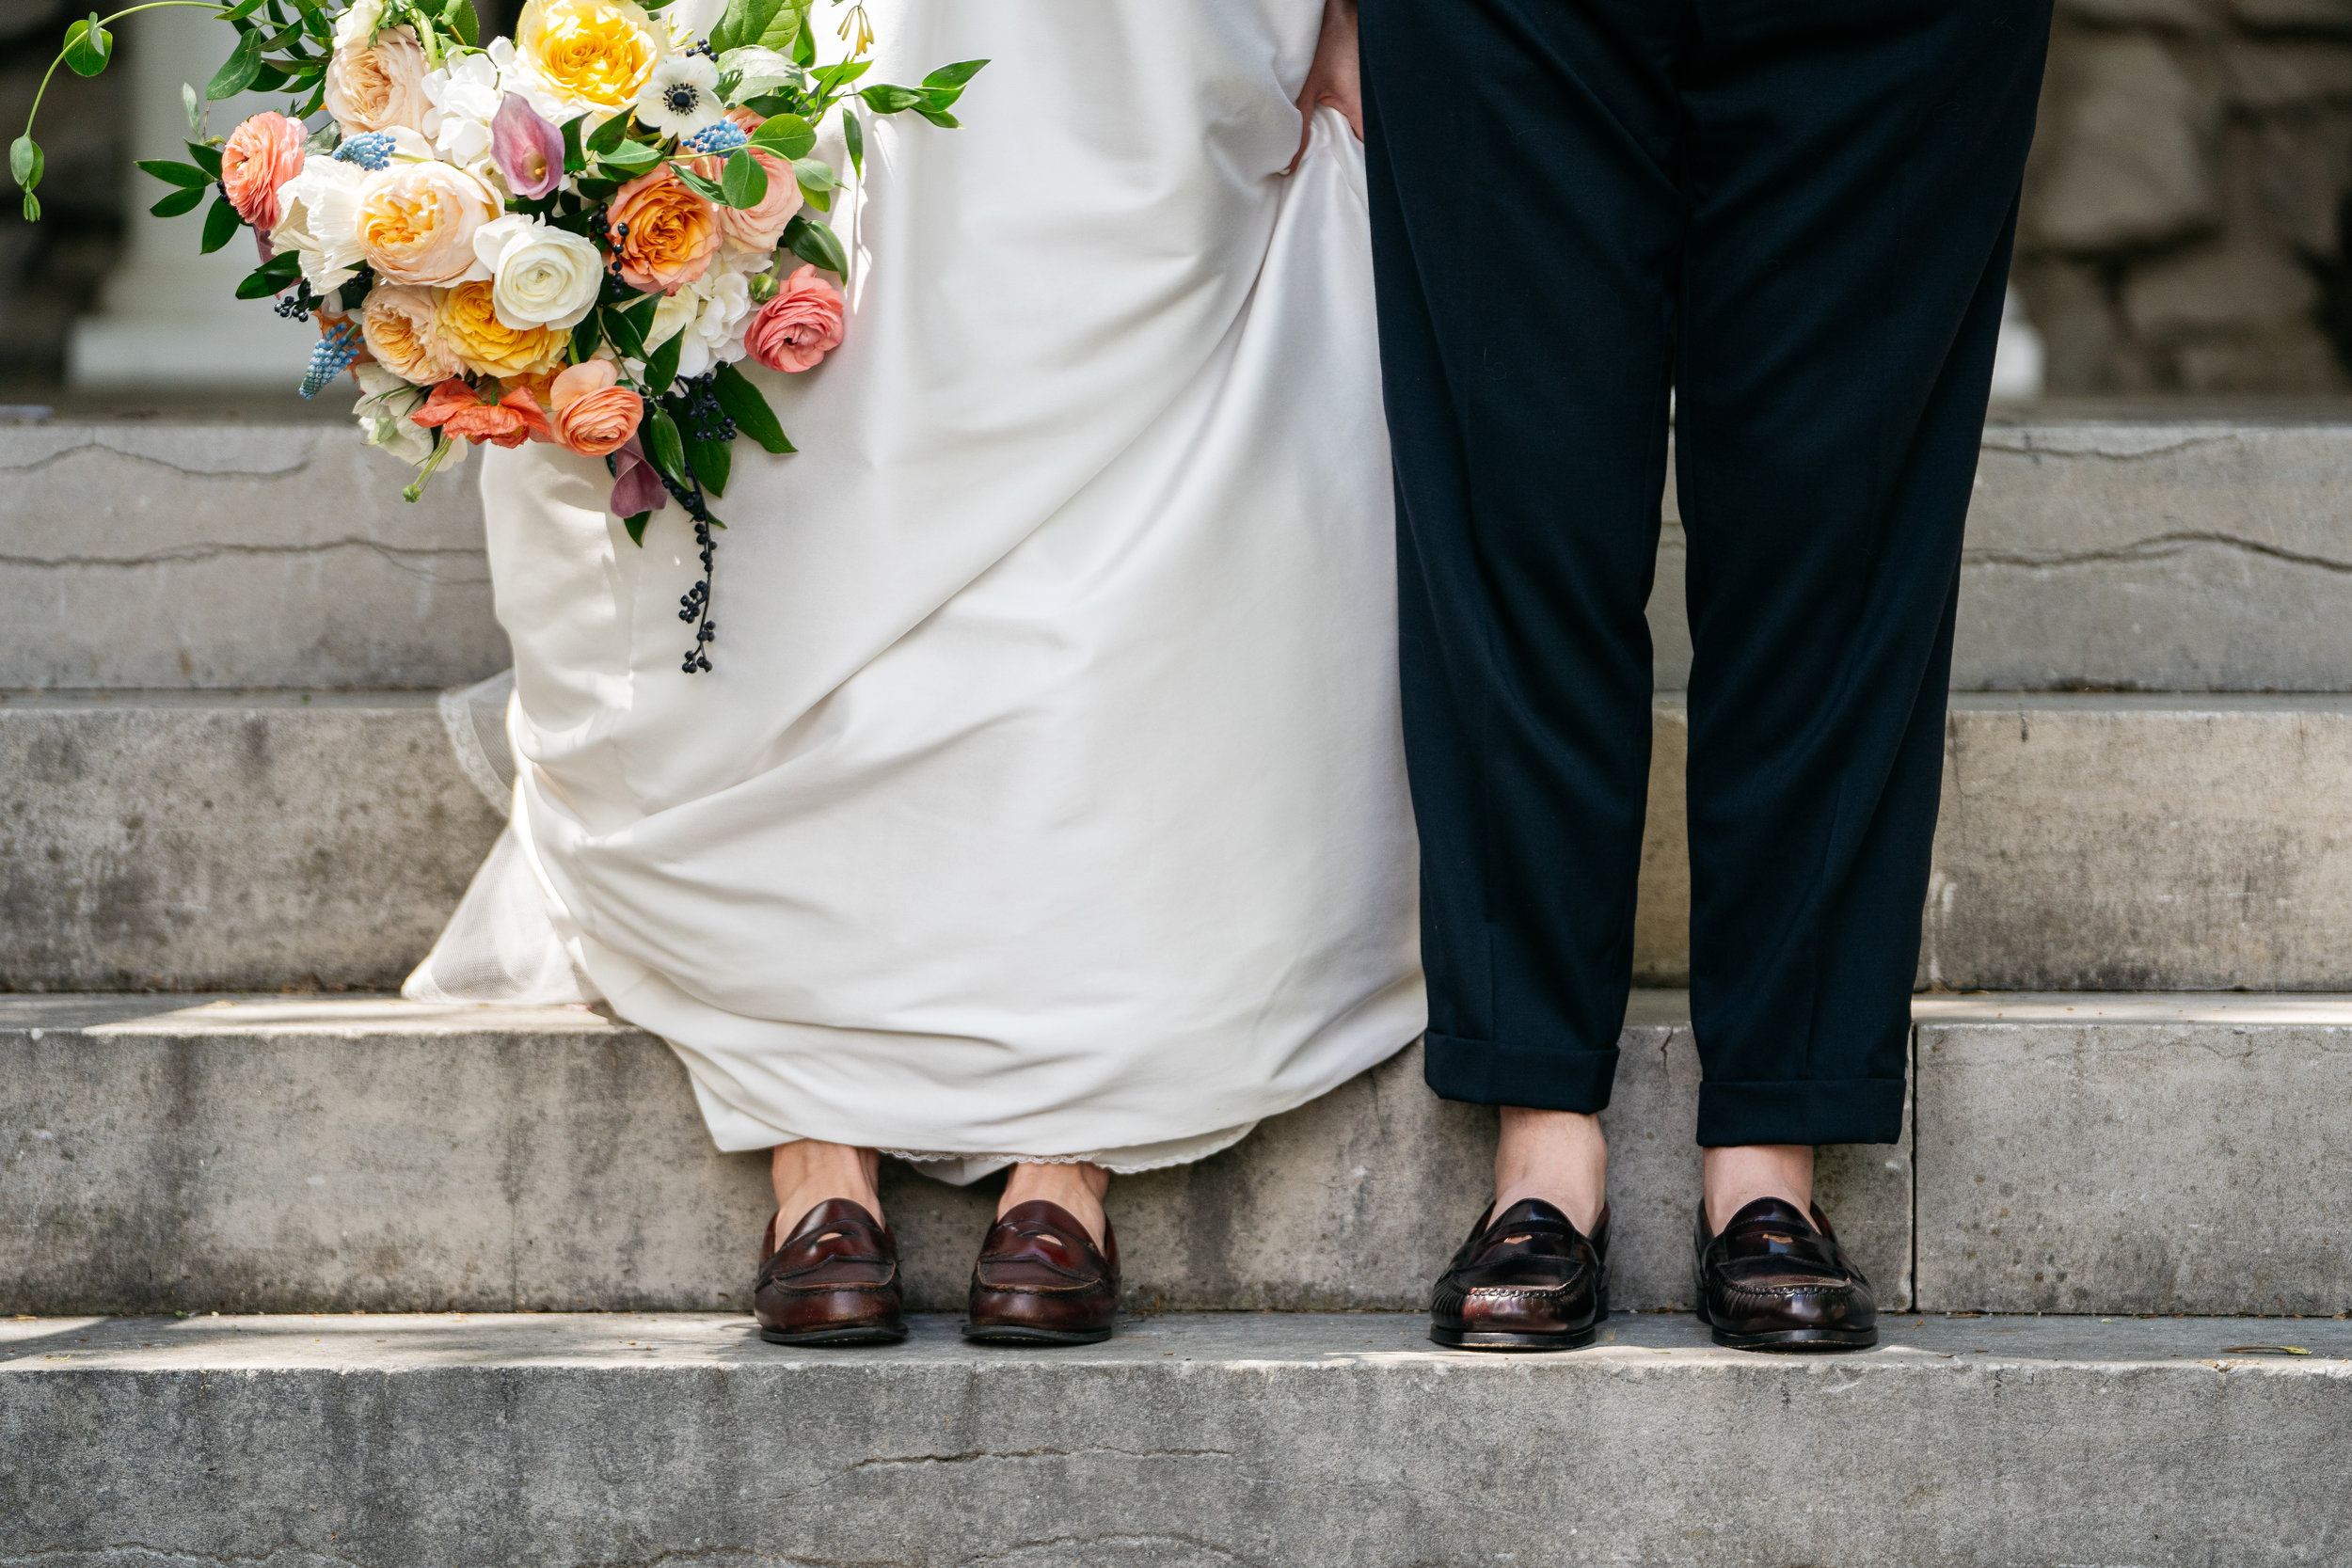 The couple wore matching shoes to their wedding. With encouragement from their wedding planner to make their day their own, they chose vintage penny loafers that are meaningful to both of them.